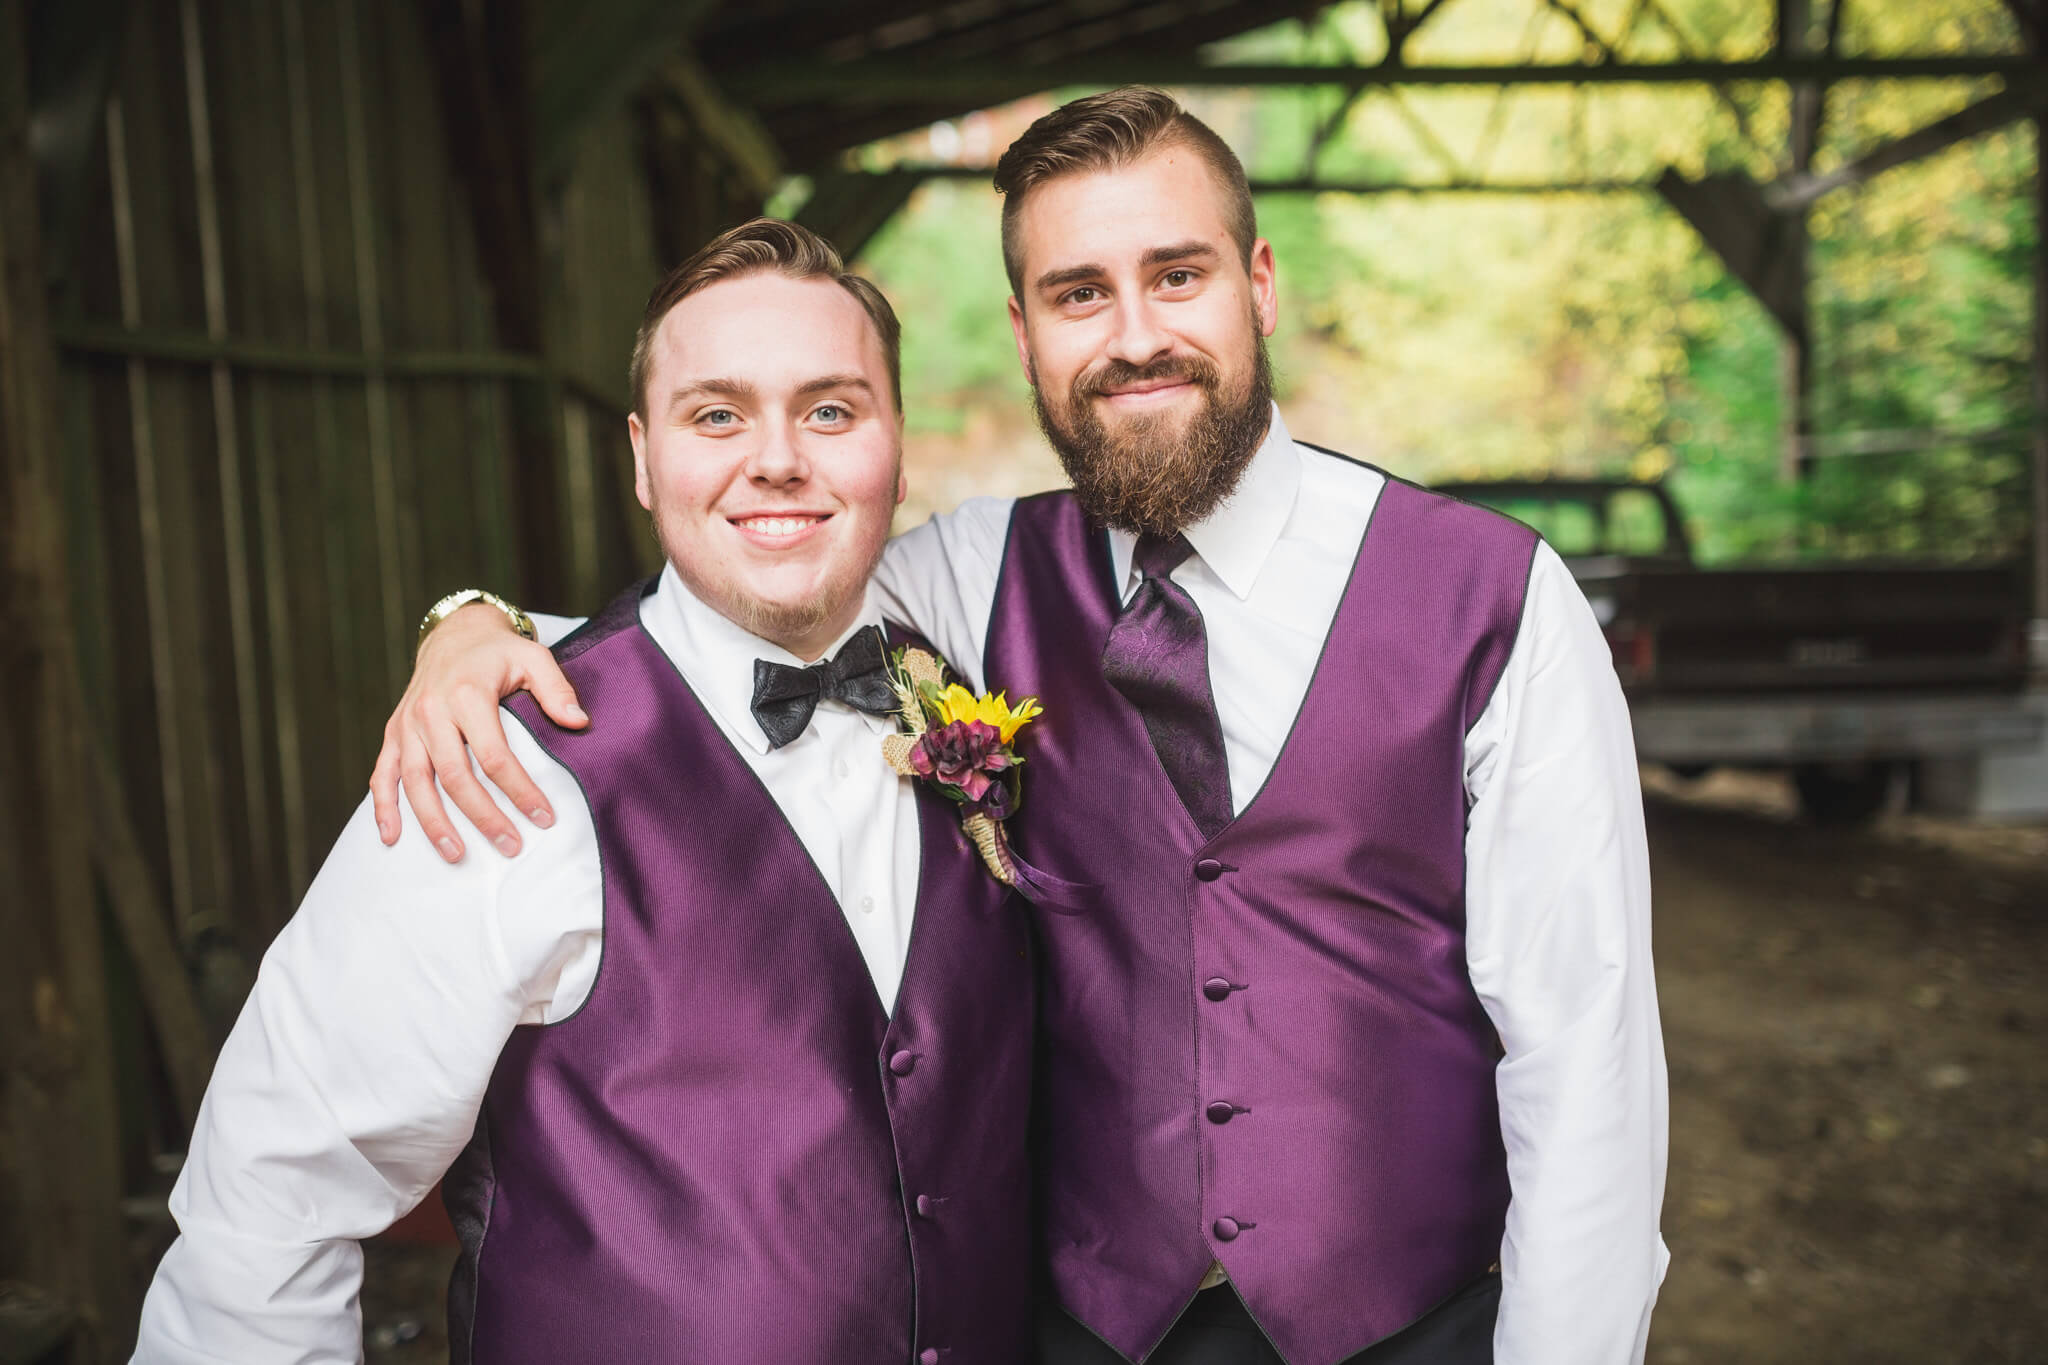 Mitcham's Barn Wedding-104.JPG